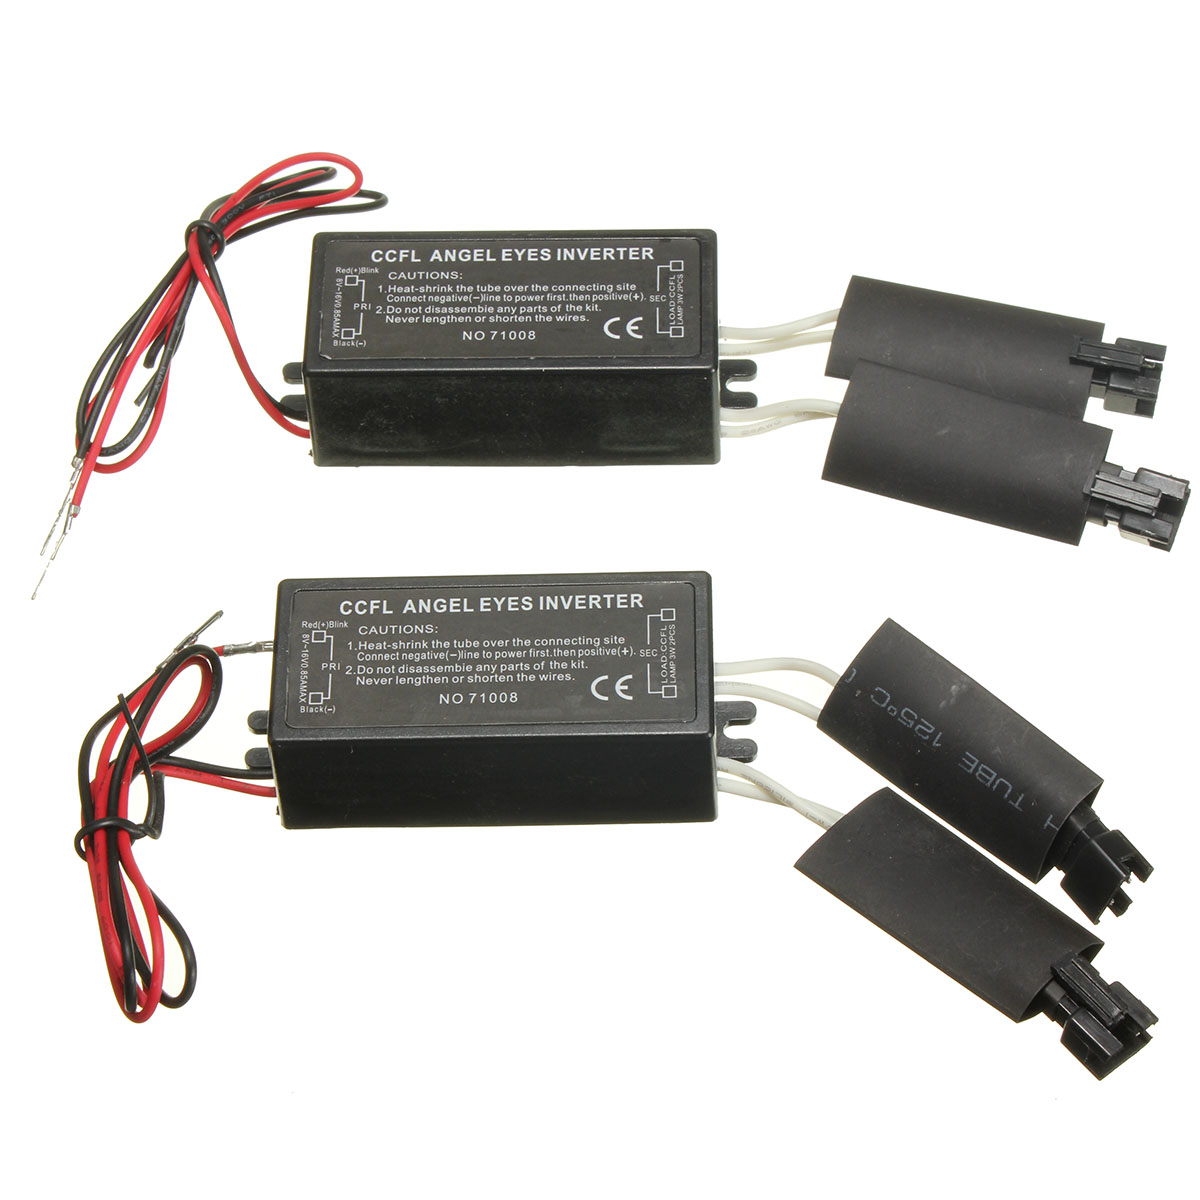 1Pair Universal Car Auto Black 12V Spare CCFL Angel Eyes light  Inverter For BMW E36 E46 E53 E83